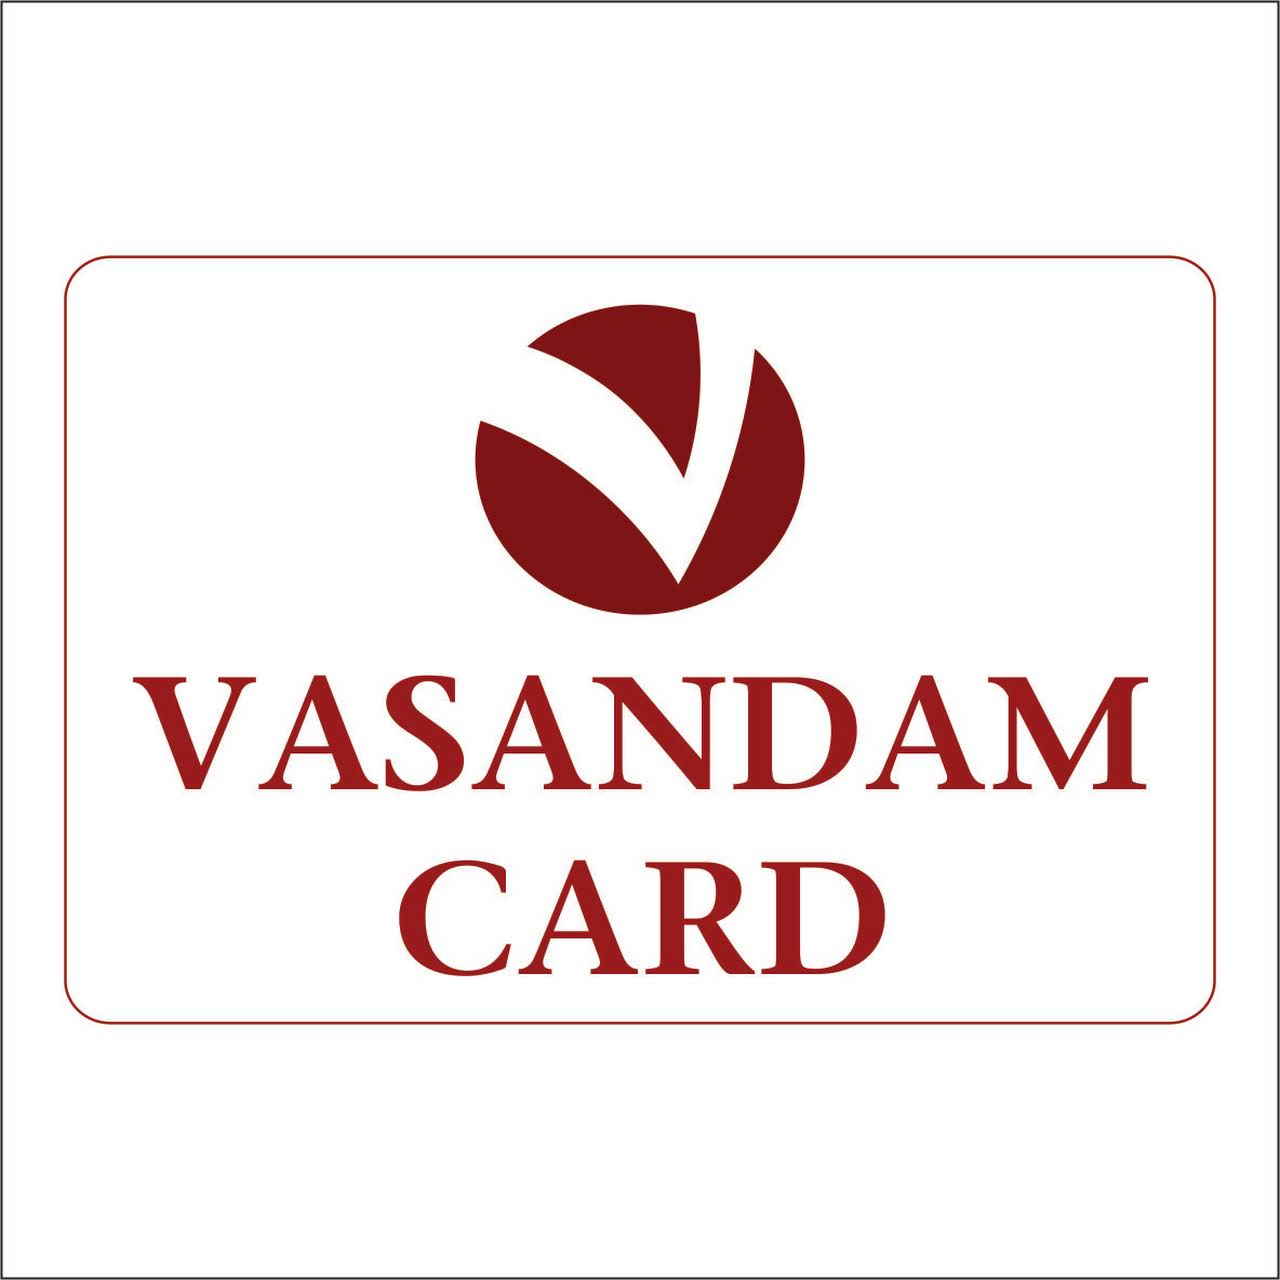 VASANDAM CARD - Premium Invitations for all Occasions. More than ...